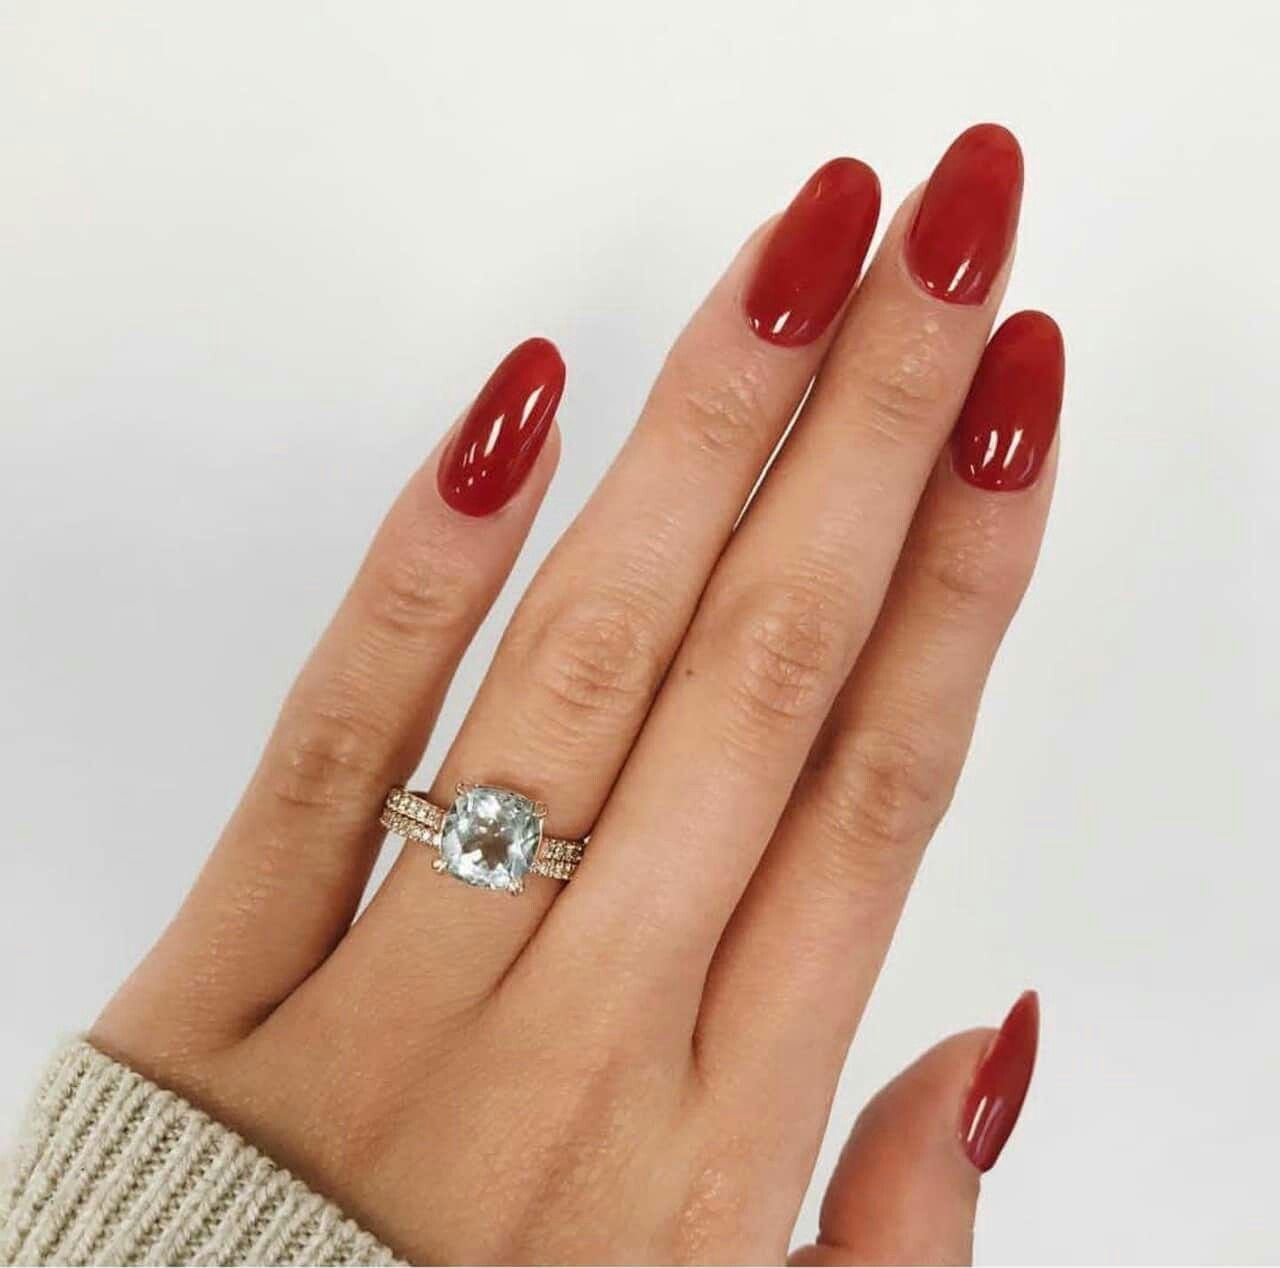 Pin by Laylah Mitchell on NAILZ | Pinterest | Claw nails, Manicure ...